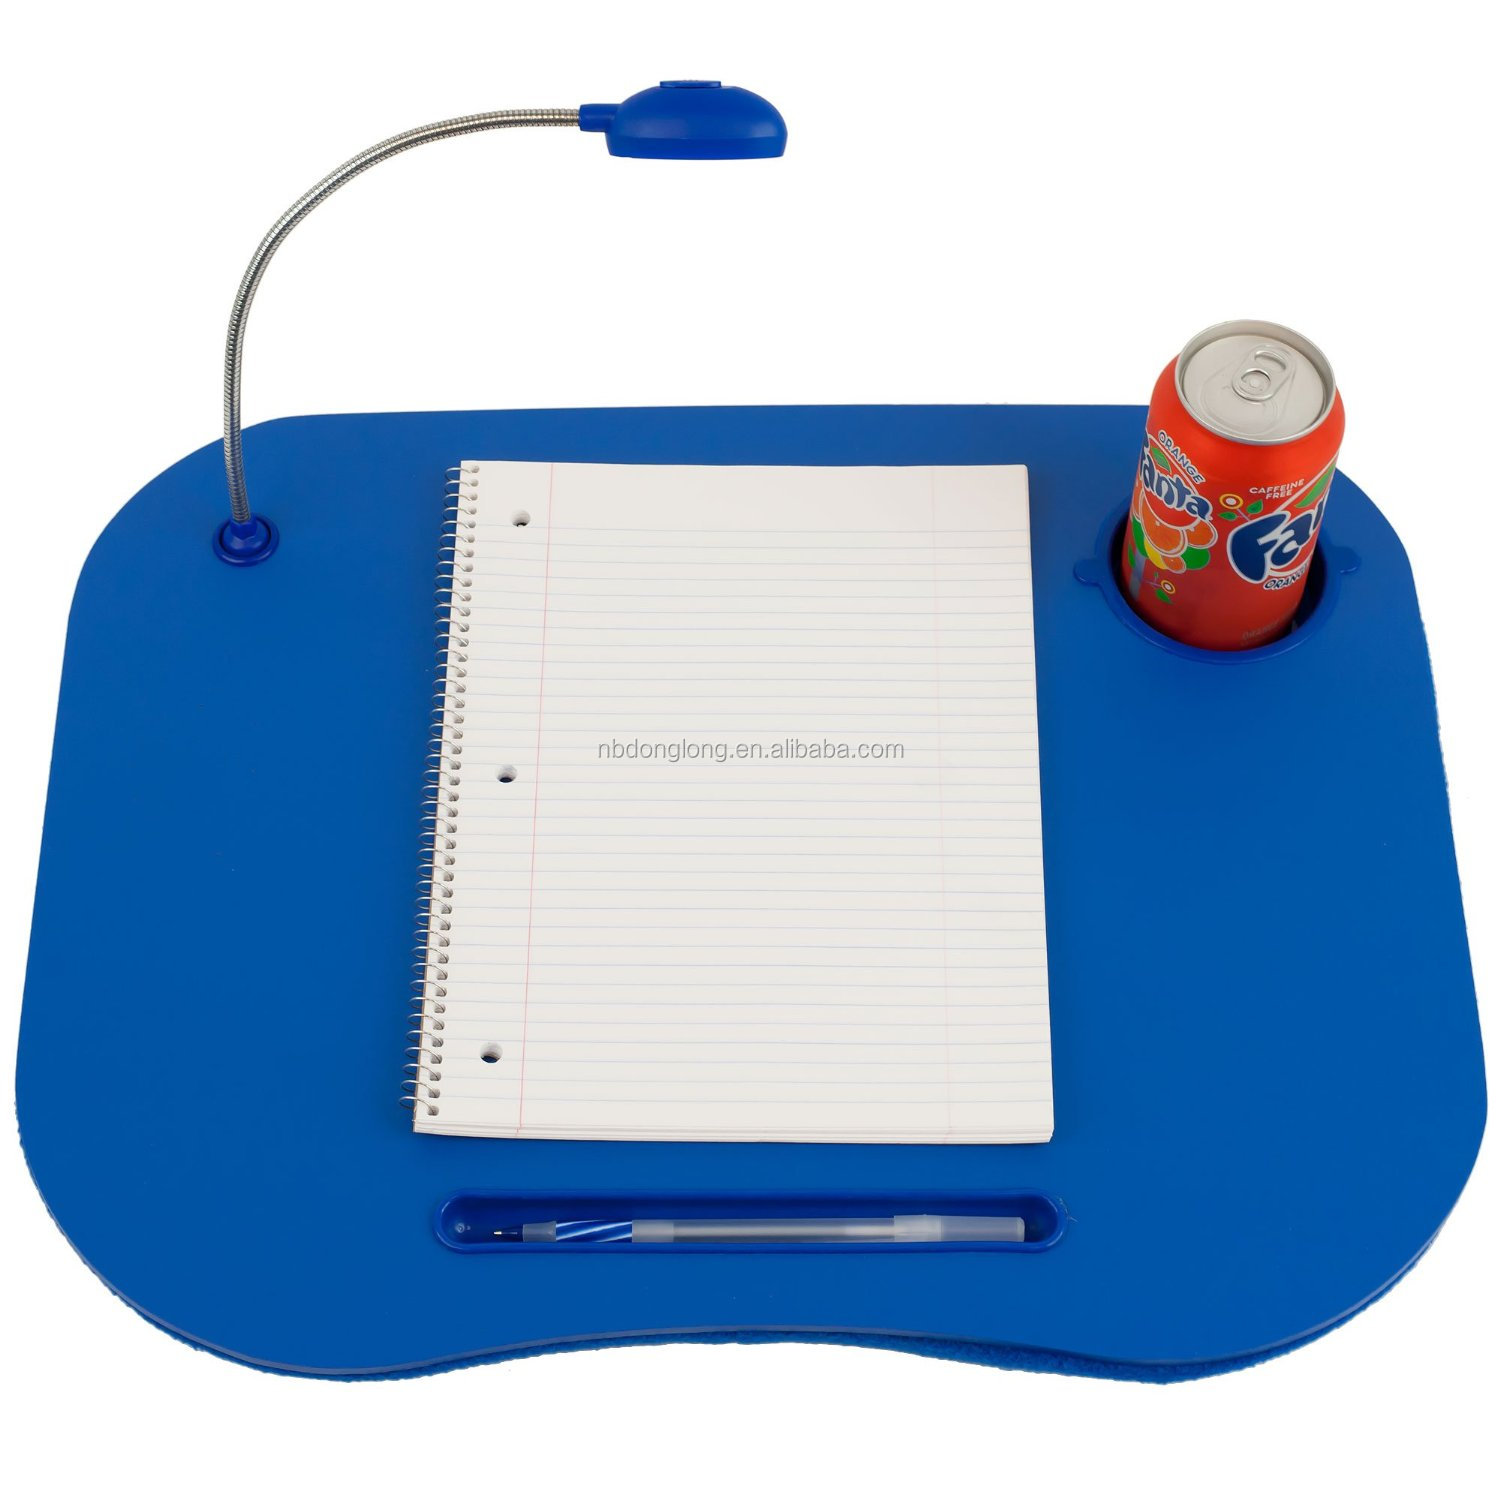 kids children laptop desk/table/stand/lab desk with cartoon printing